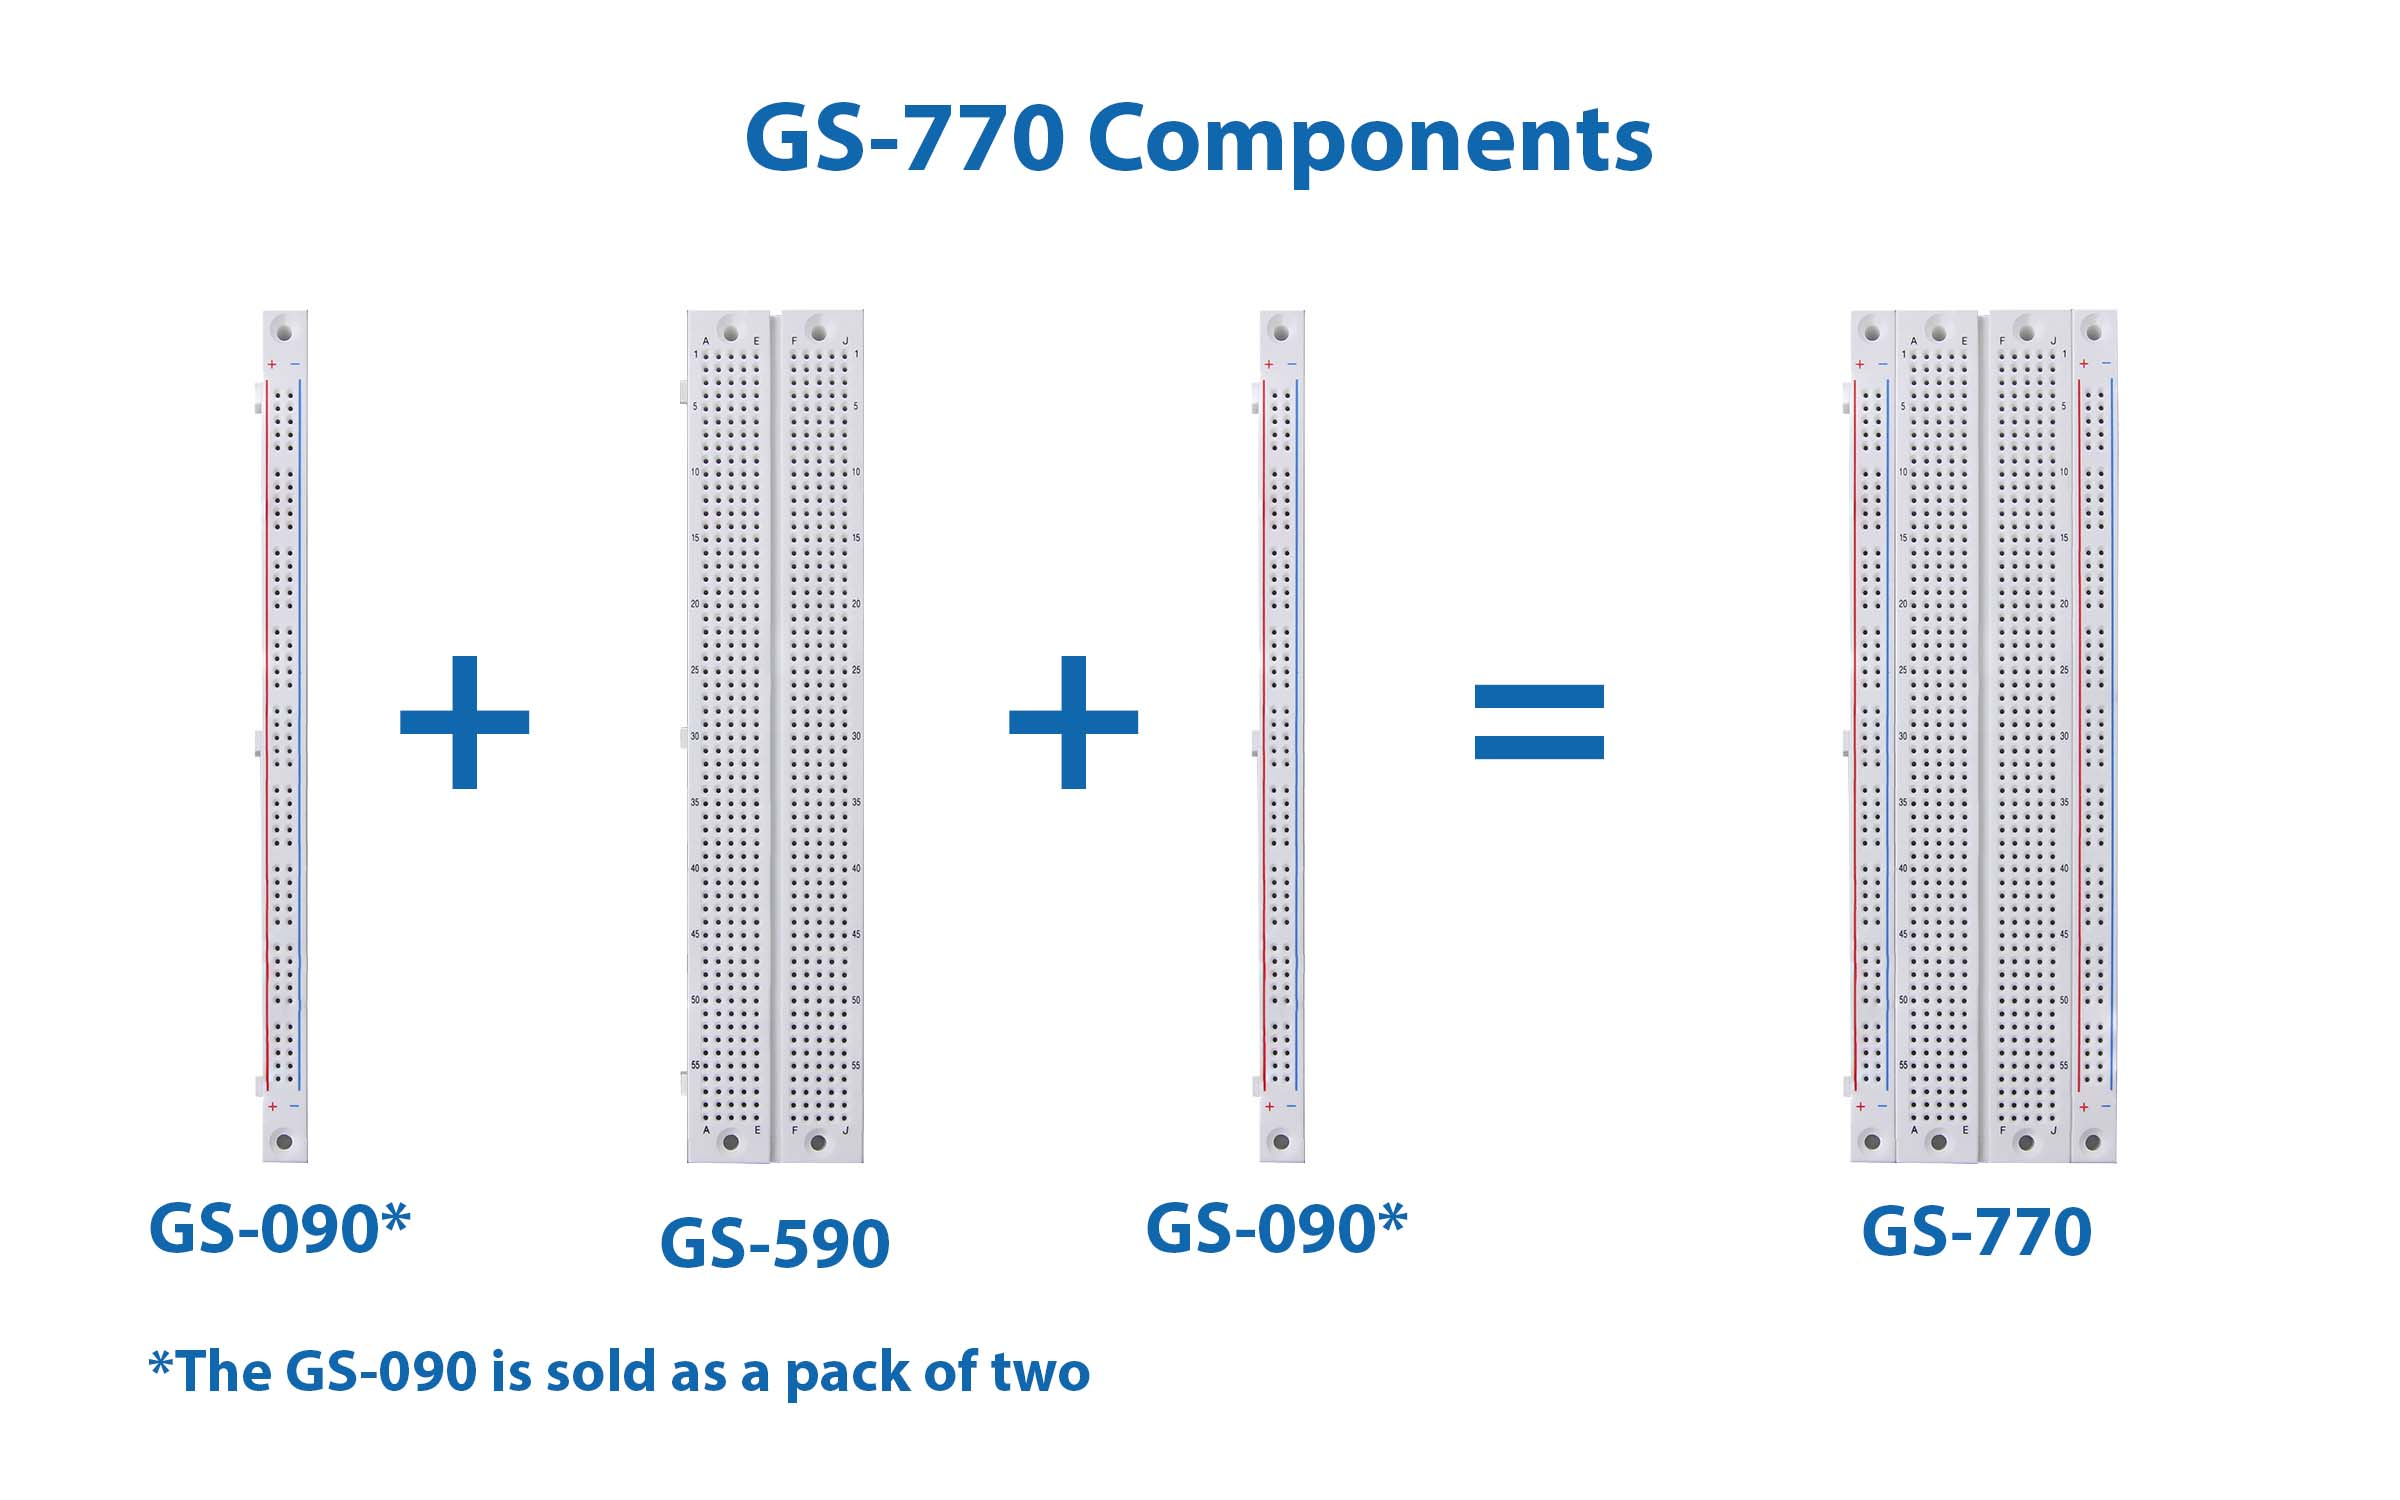 GS-770 Components Diagram